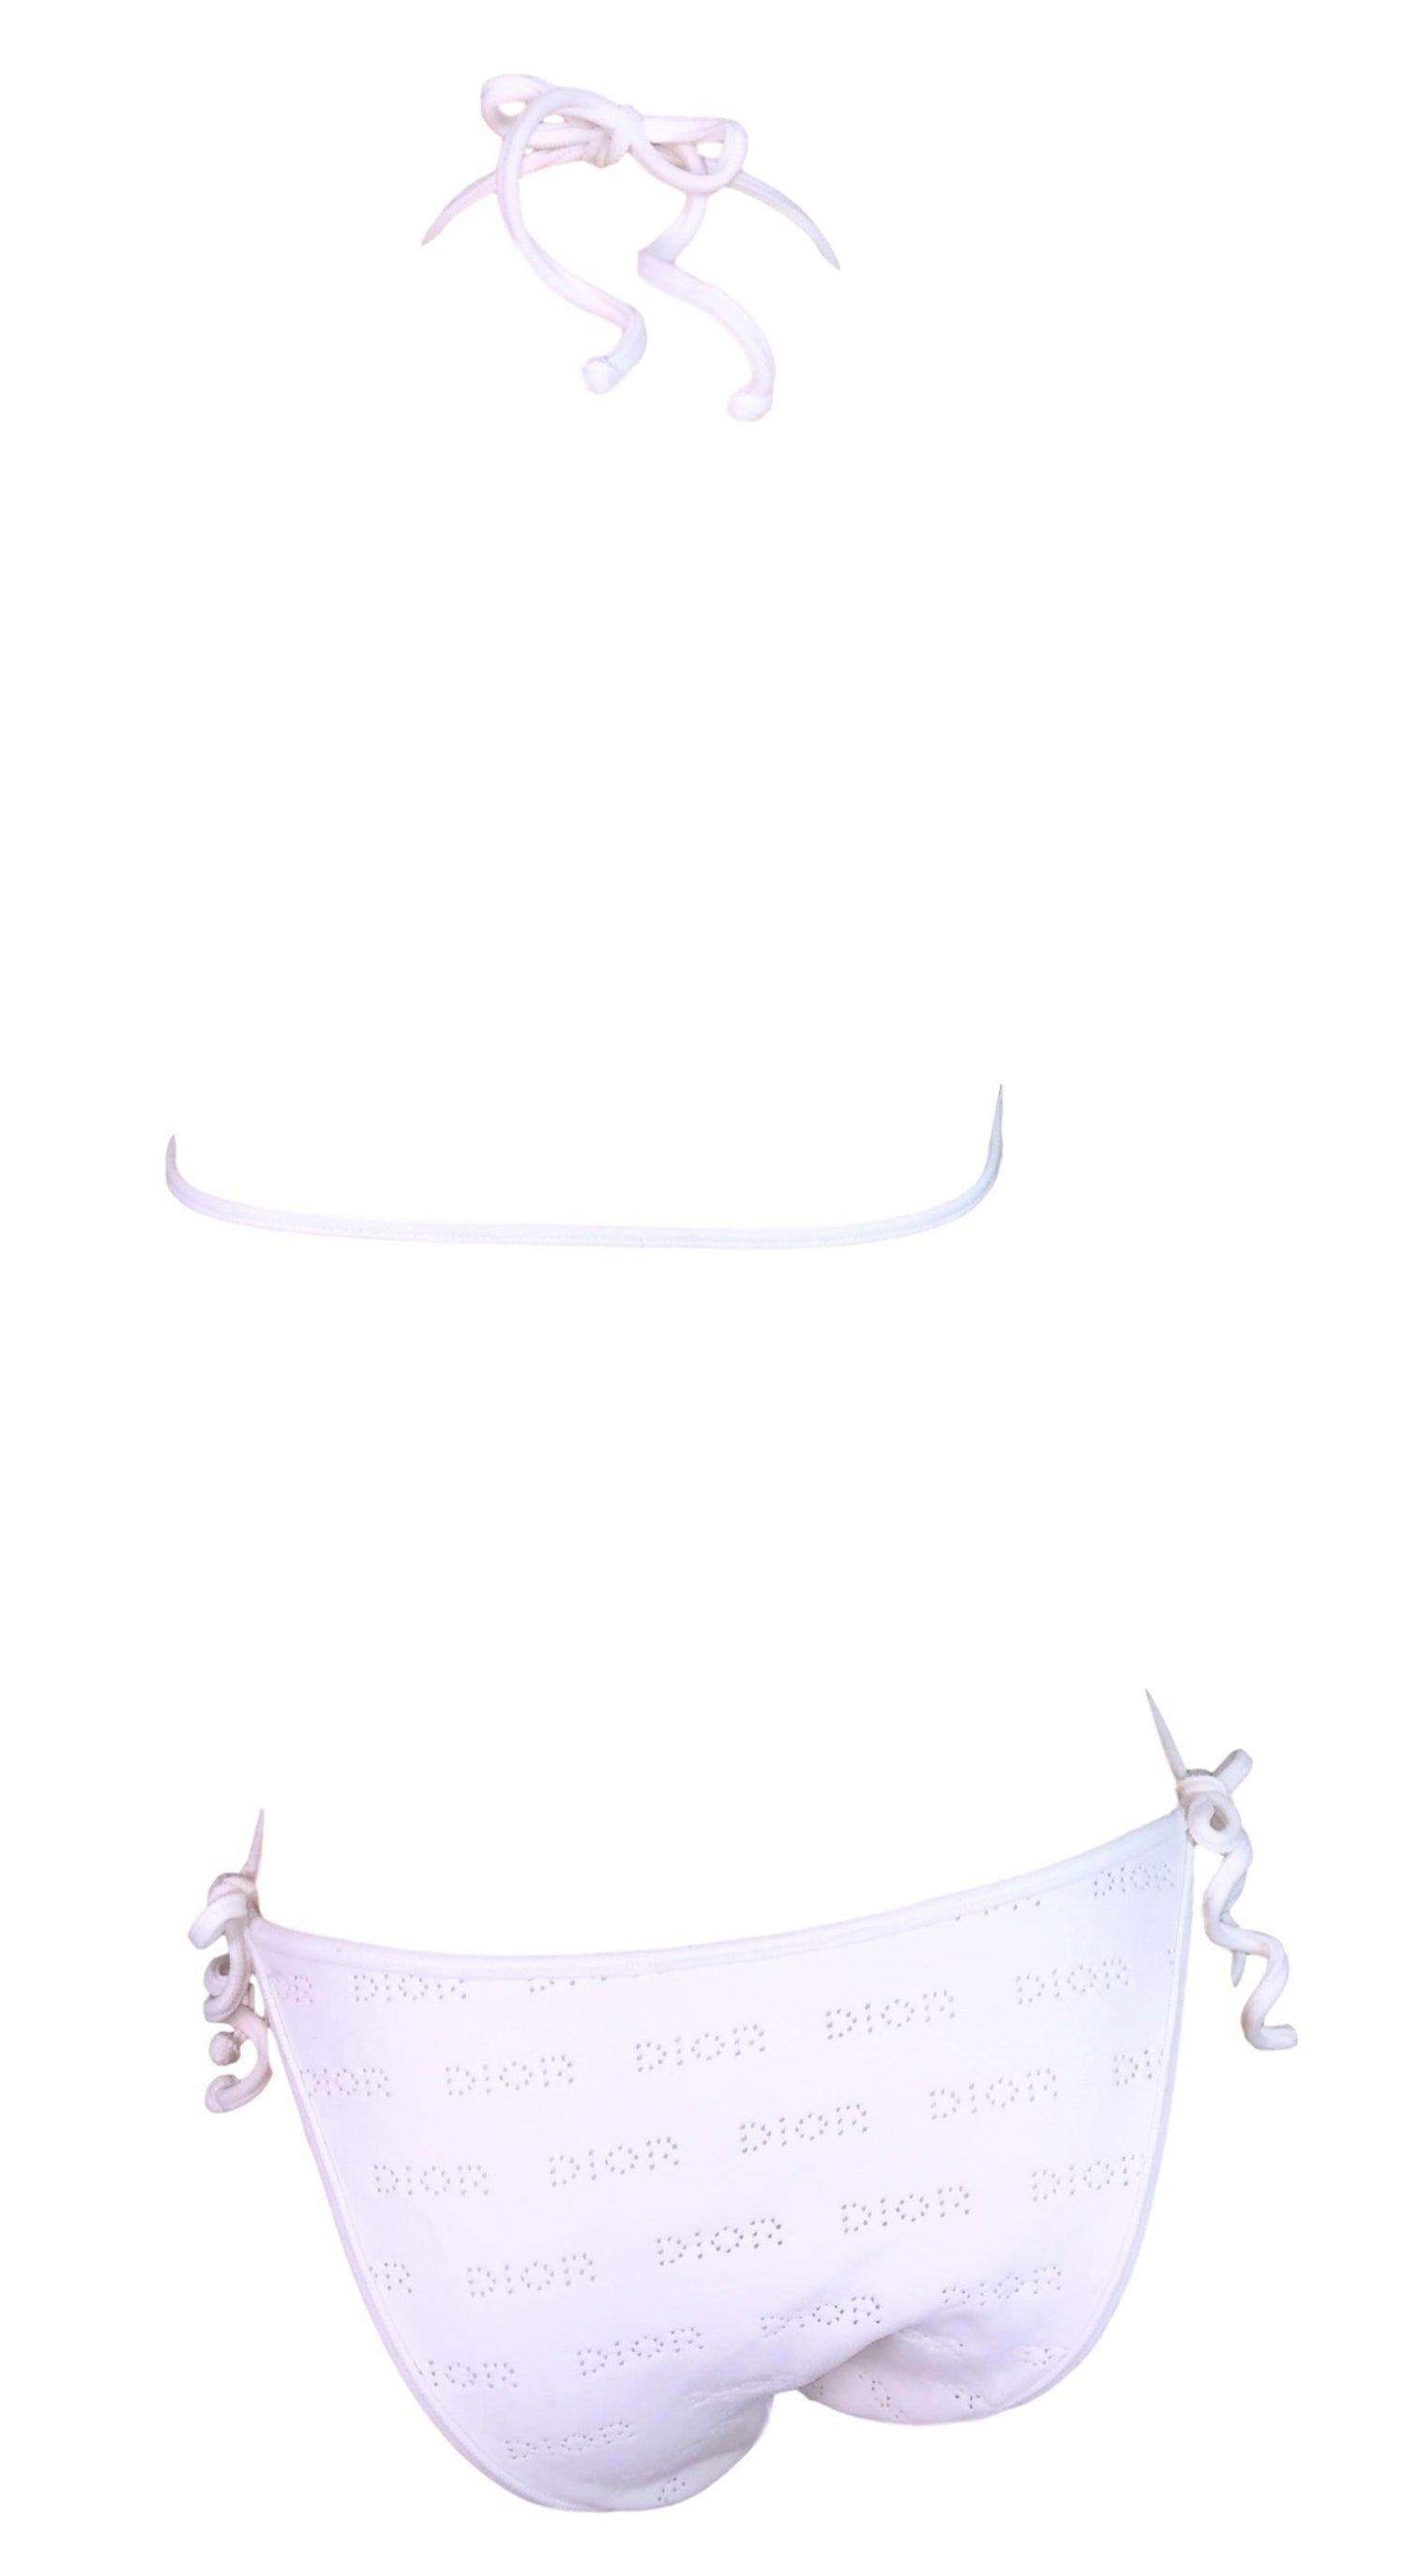 d0f999d1bd 2000 Christian Dior John Galliano White Cut-Out Logo Monogram Bodysuit  Swimsuit For Sale at 1stdibs